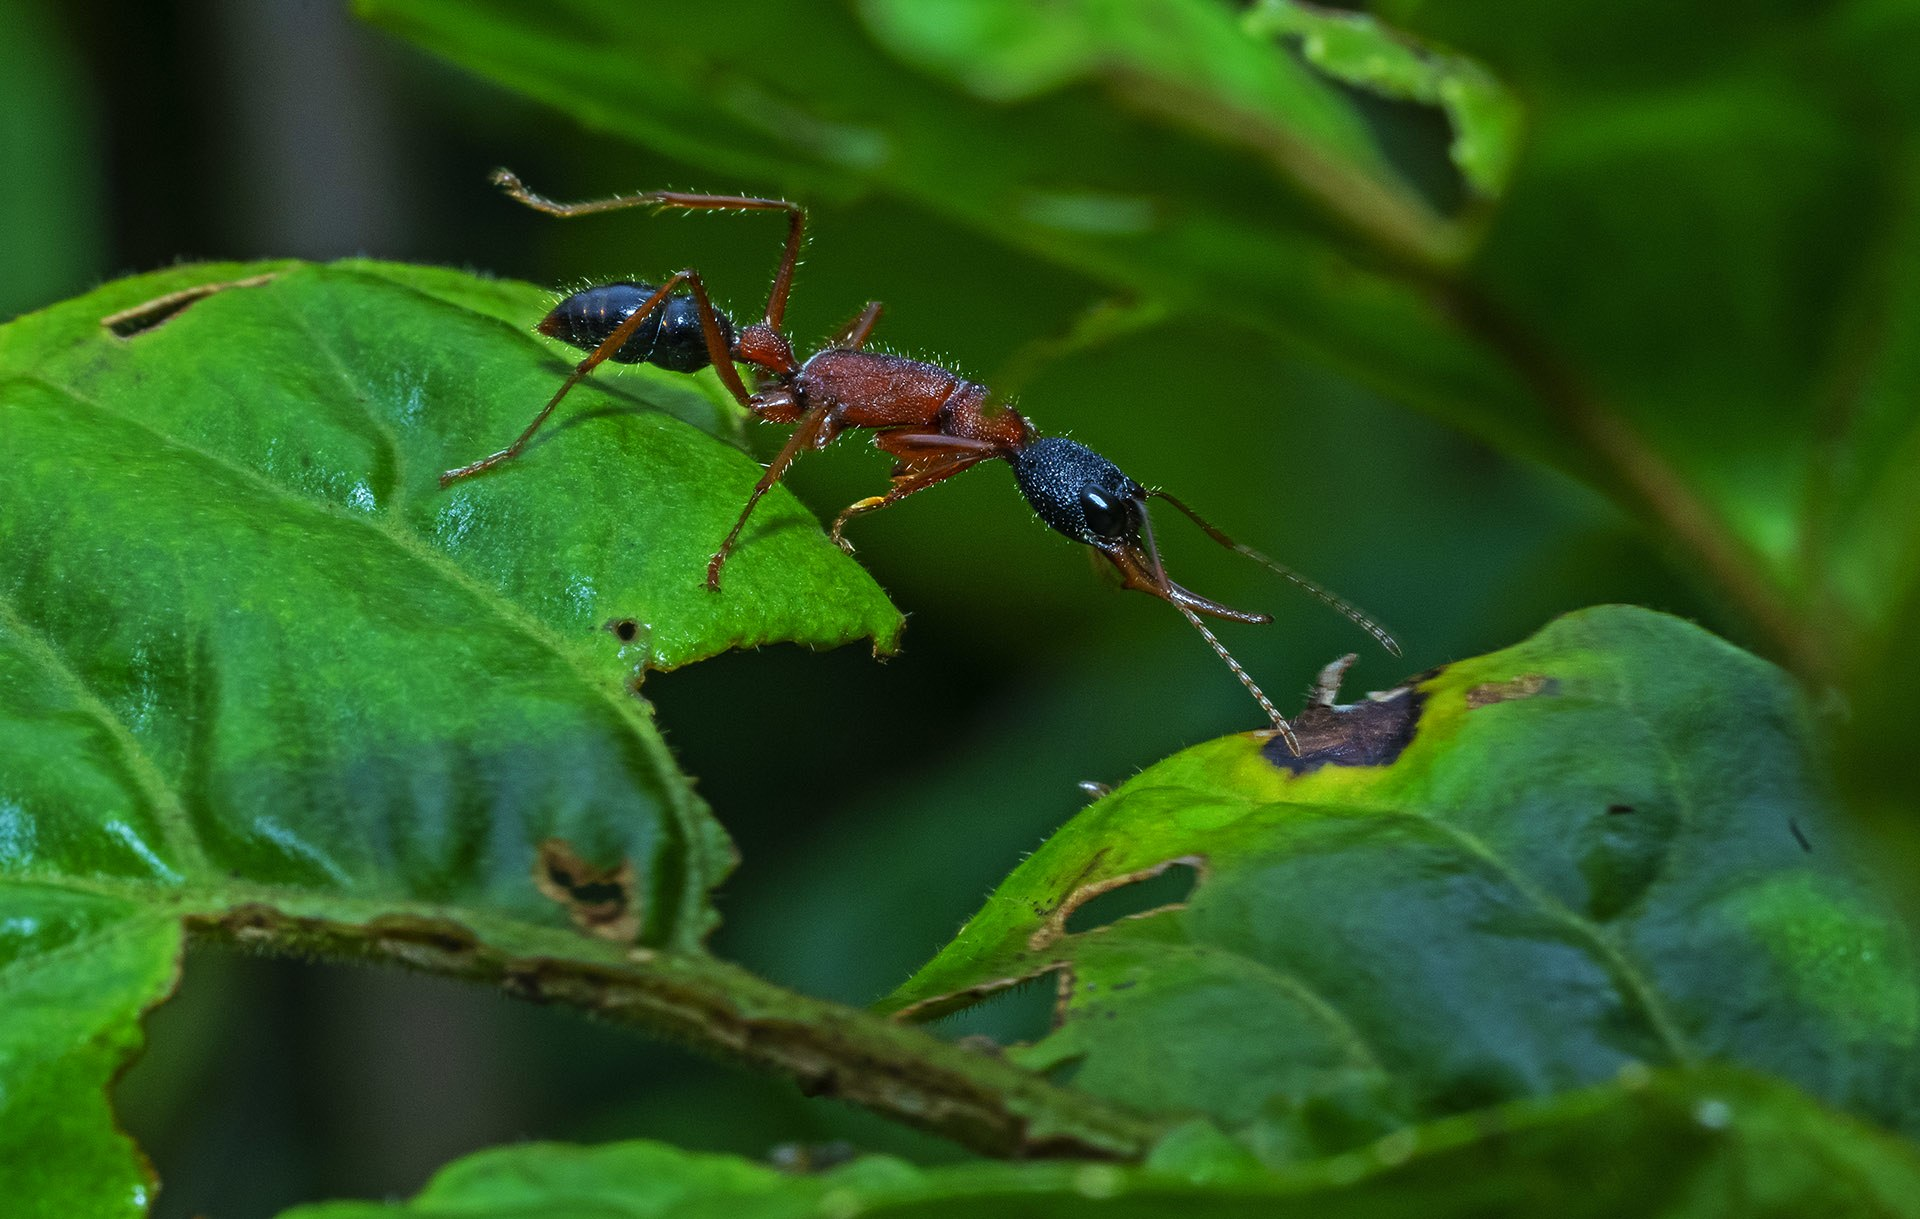 The Jerdon's jumping ant (Harpegnathos saltator) is an extremely efficient predator on the ground thanks to its elongated body, big eyes, long mandibles and ability to leap a few inches. What's also unique to this species of ants is that the workers and the queen of this species mate with each other.